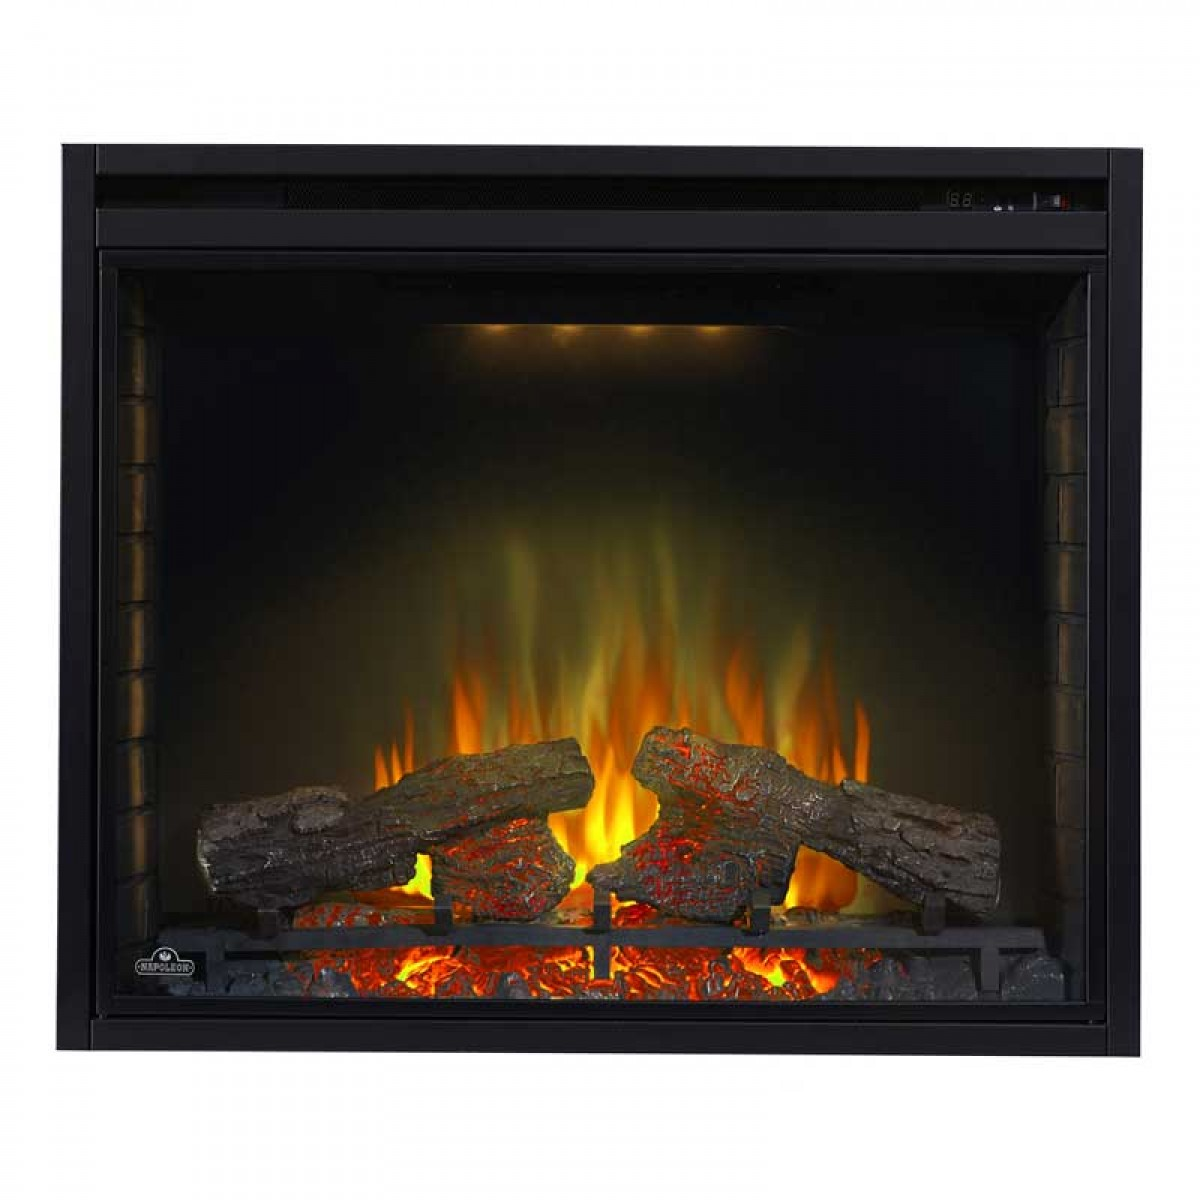 Napoleon ascent 33 electric fireplace at ibuyfireplaces for Electric fireplace pics